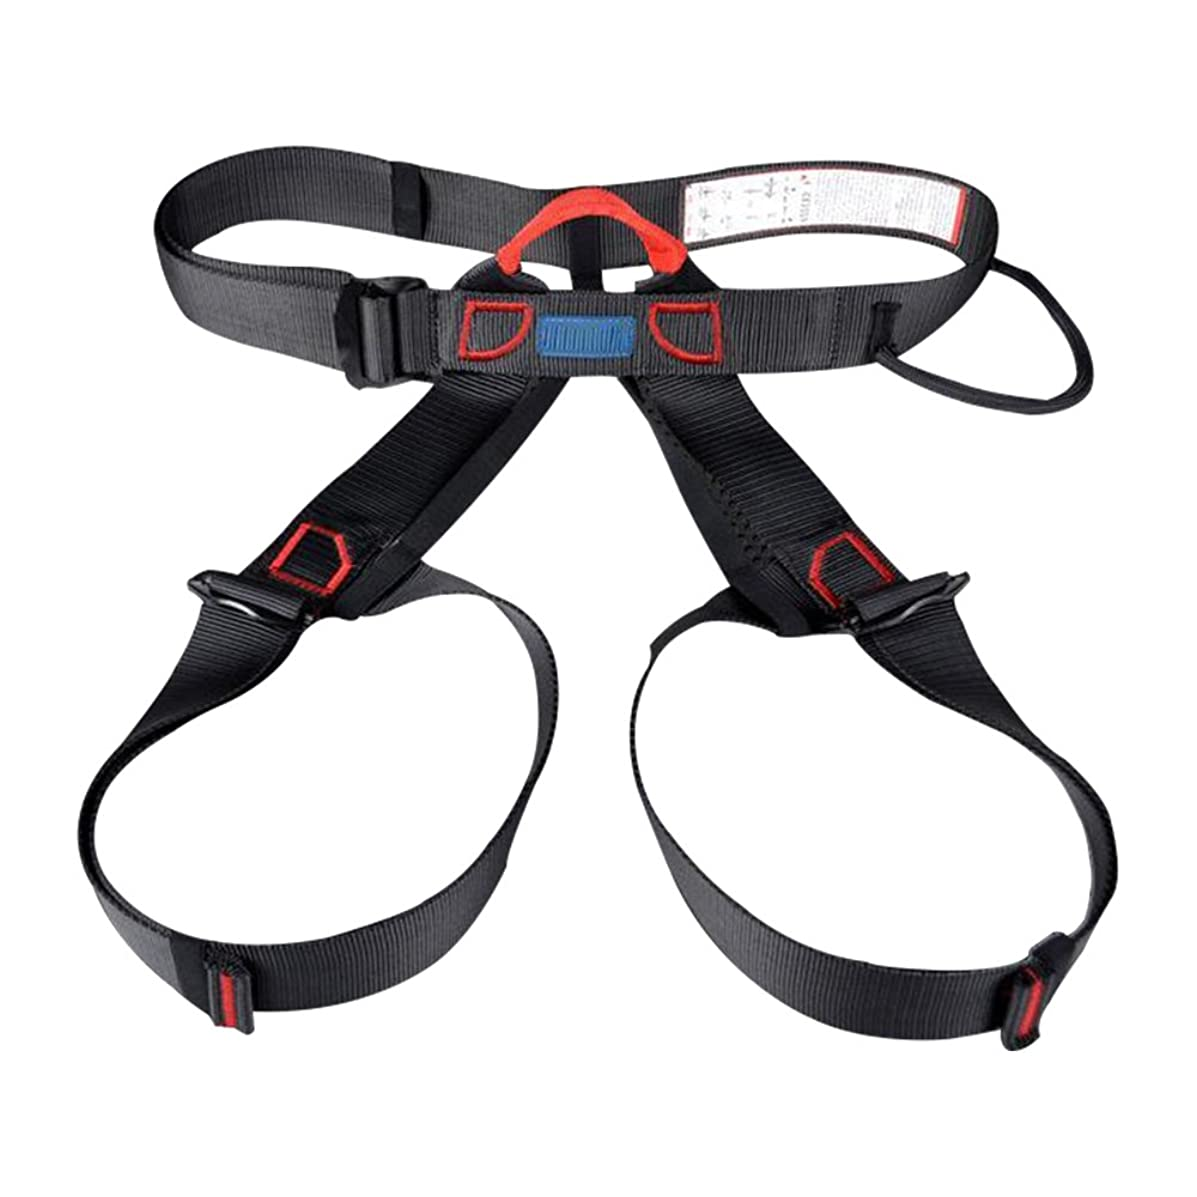 Thicken Wider Climbing Harness- Treestand Harness For Mountaineering Fire Rescue Working On The Higher Caving Rock Outward Band Expanding Training Climbing Rappelling Equip (Black, Half Body Harness)